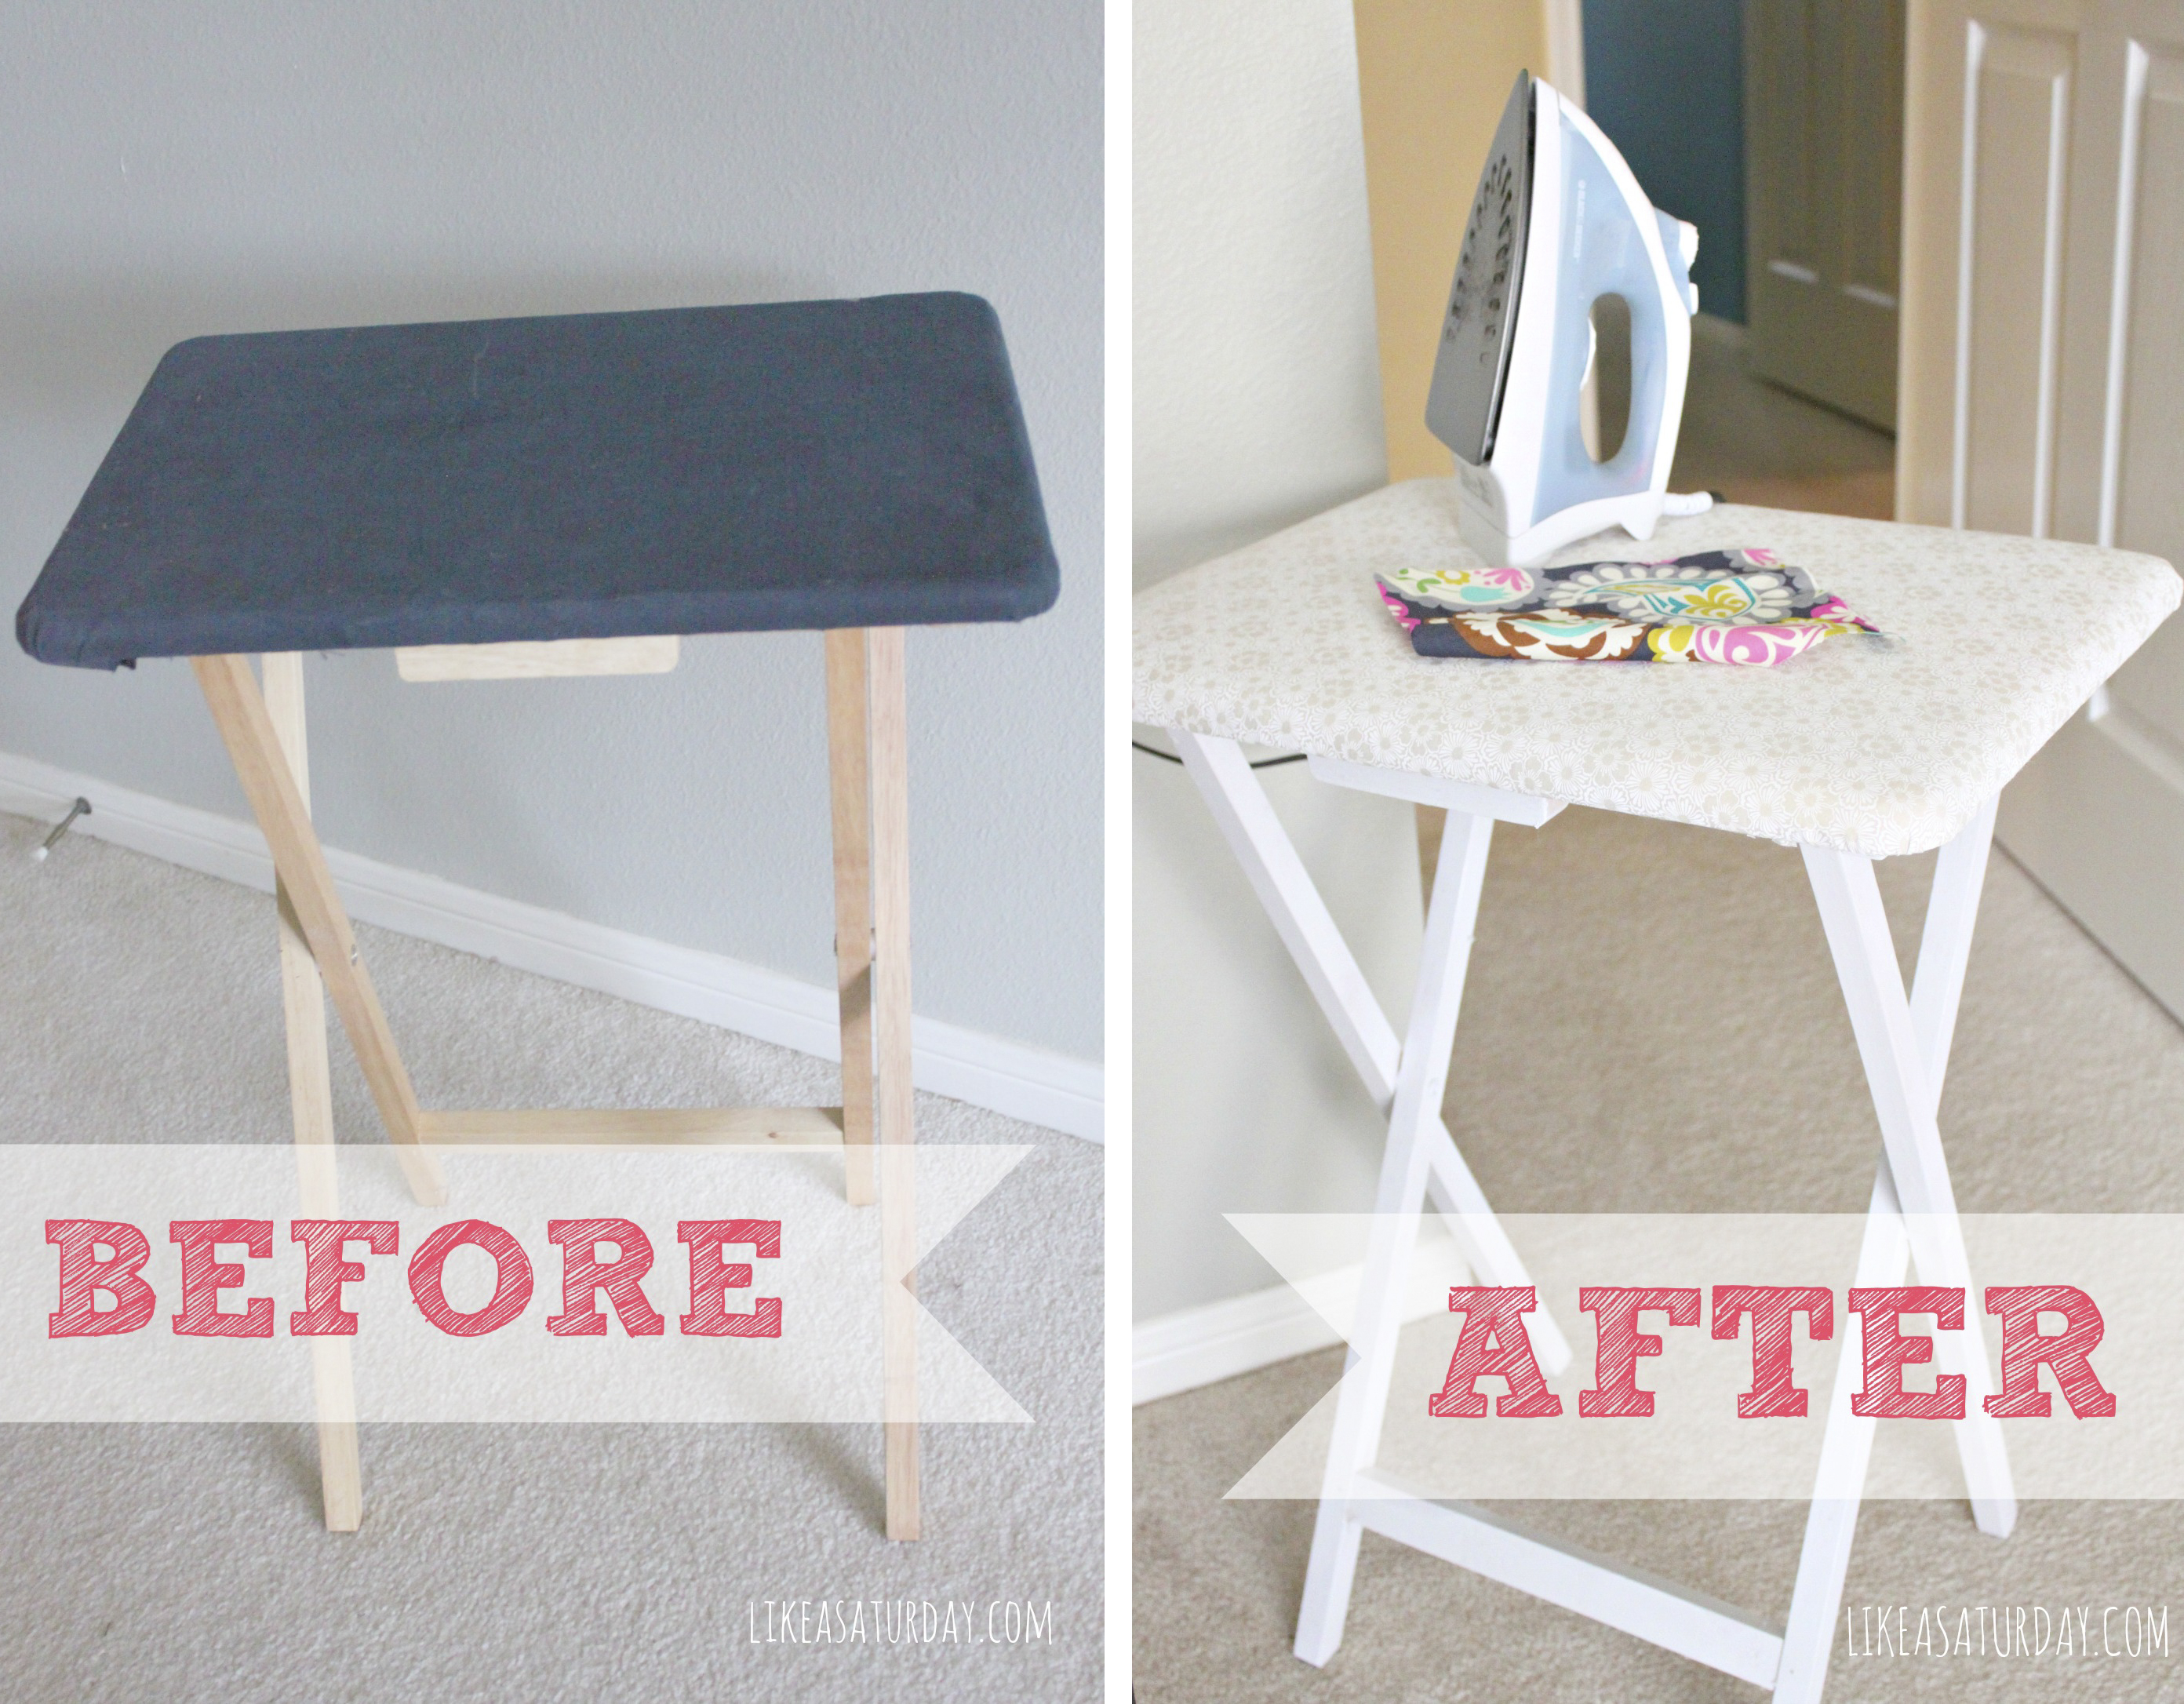 DIY Small Ironing Table